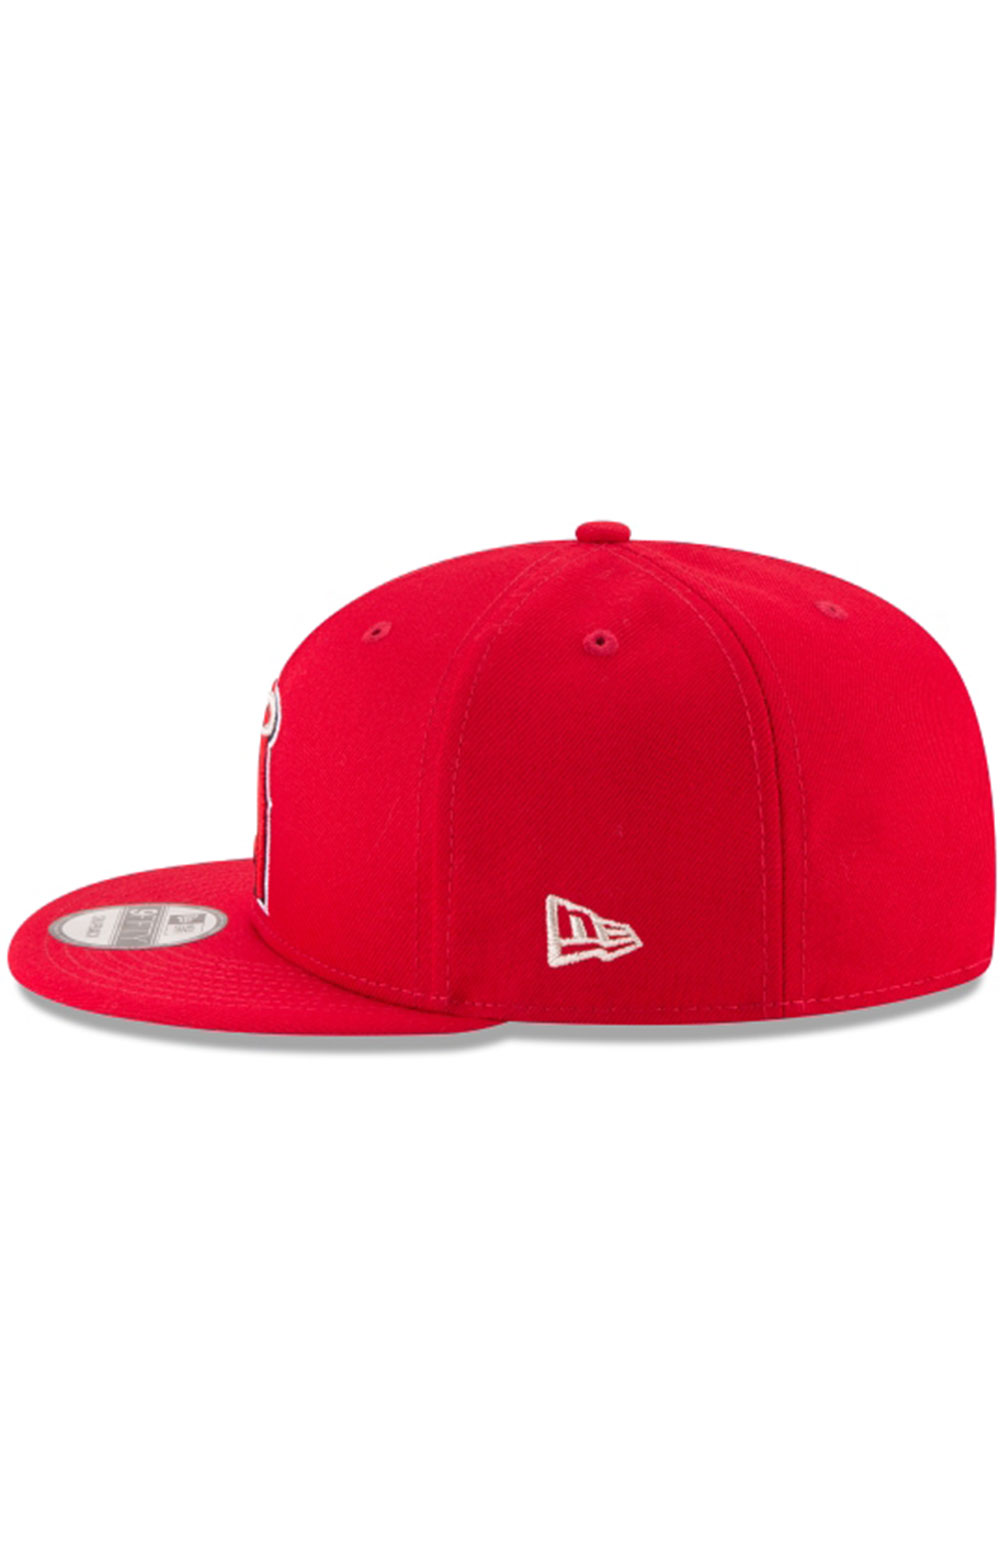 Los Angeles Angels Team Color Basic 9Fifty Snap-Back Hat  4